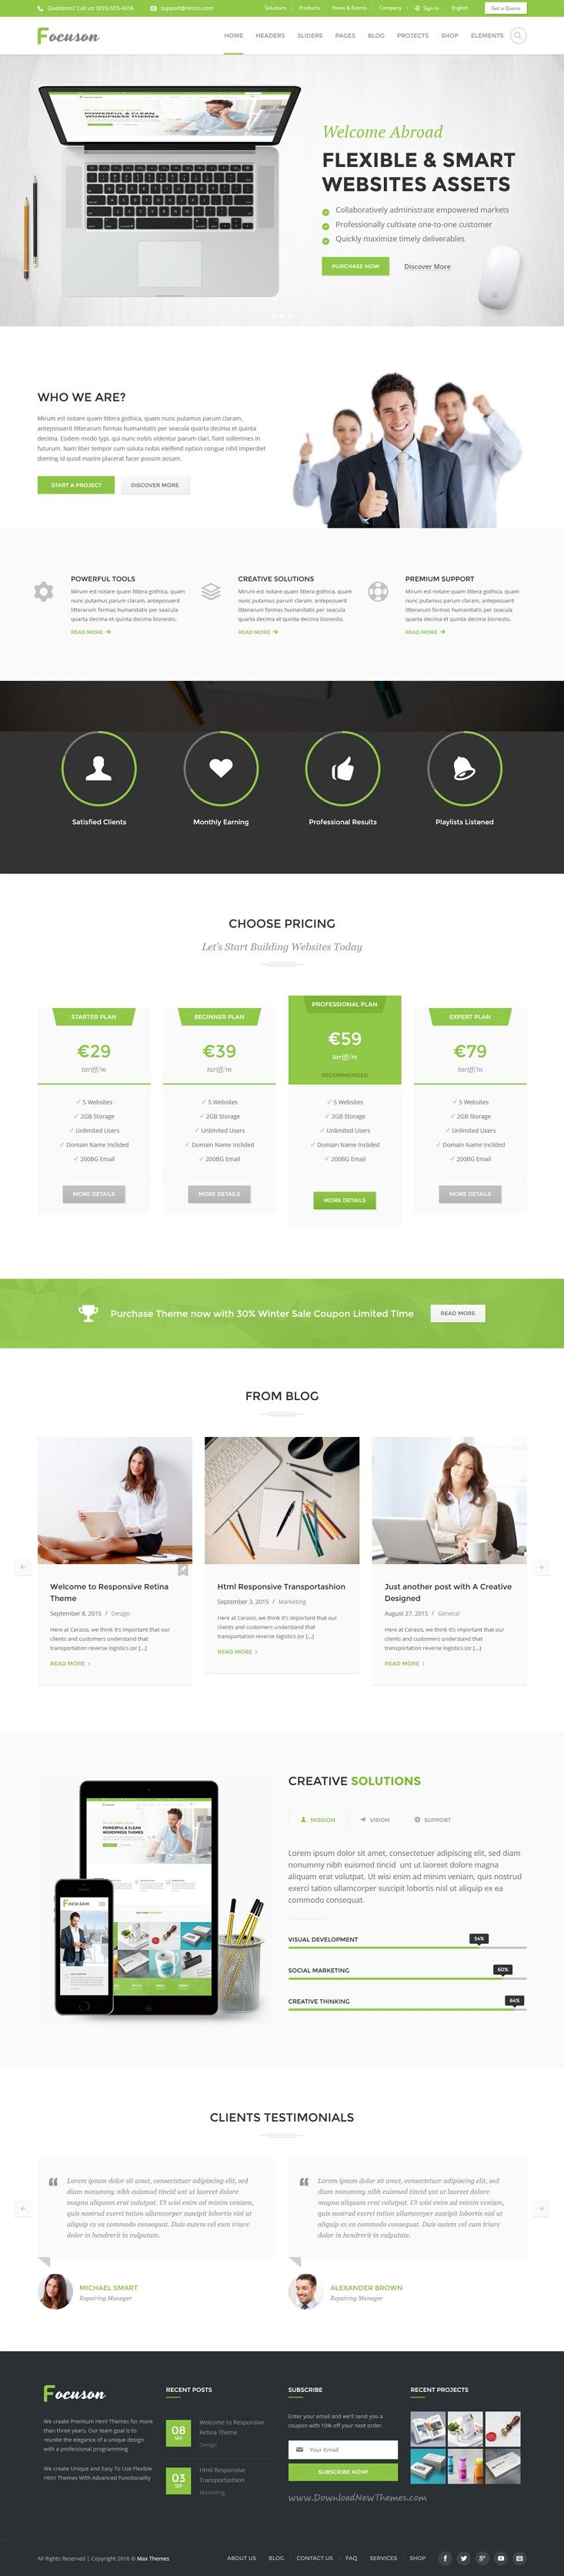 download html templates for website